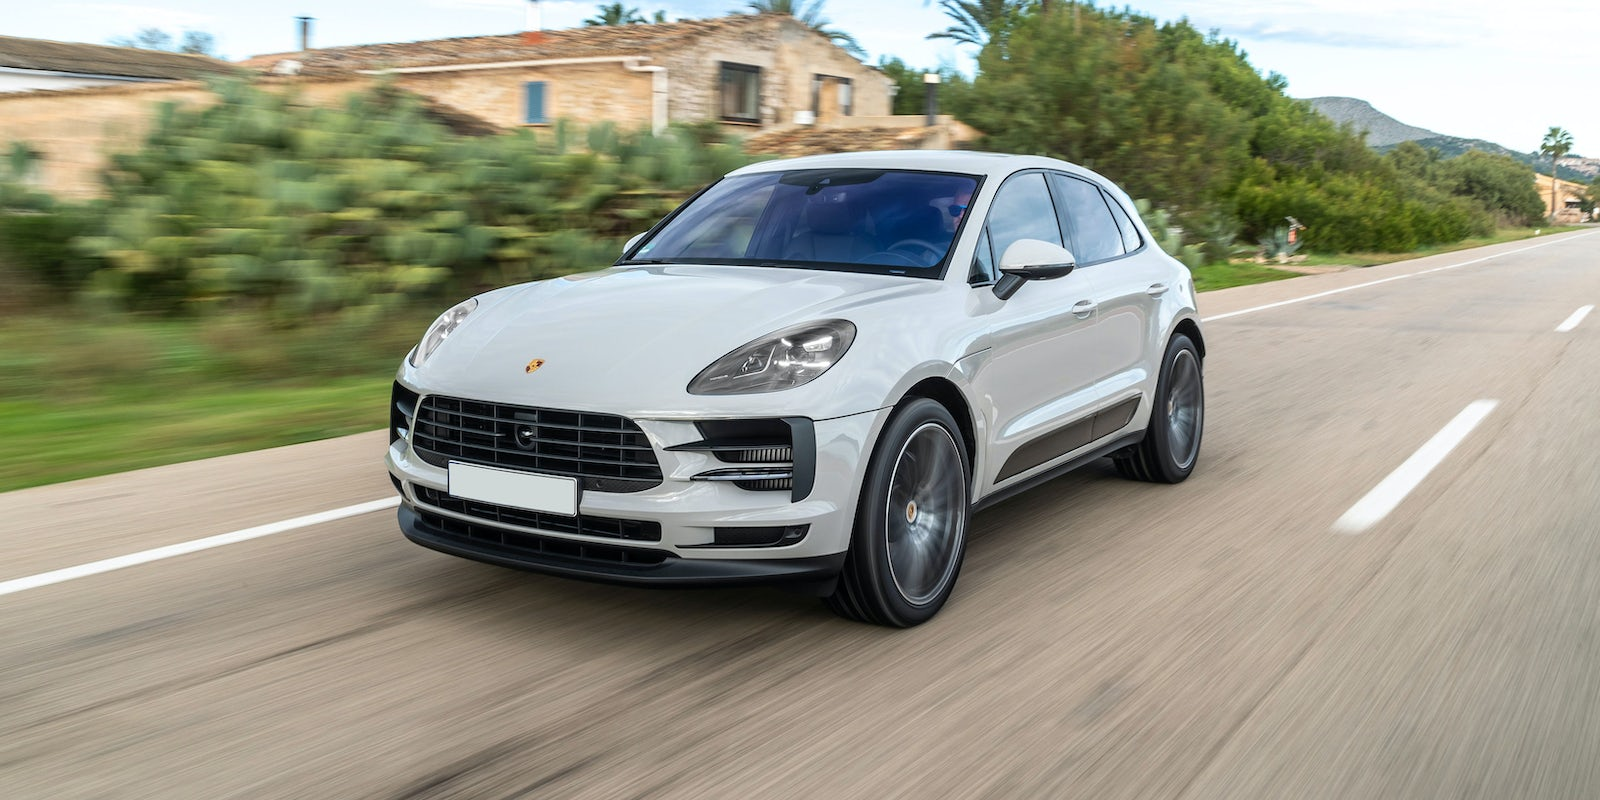 New Porsche Macan Review Carwow